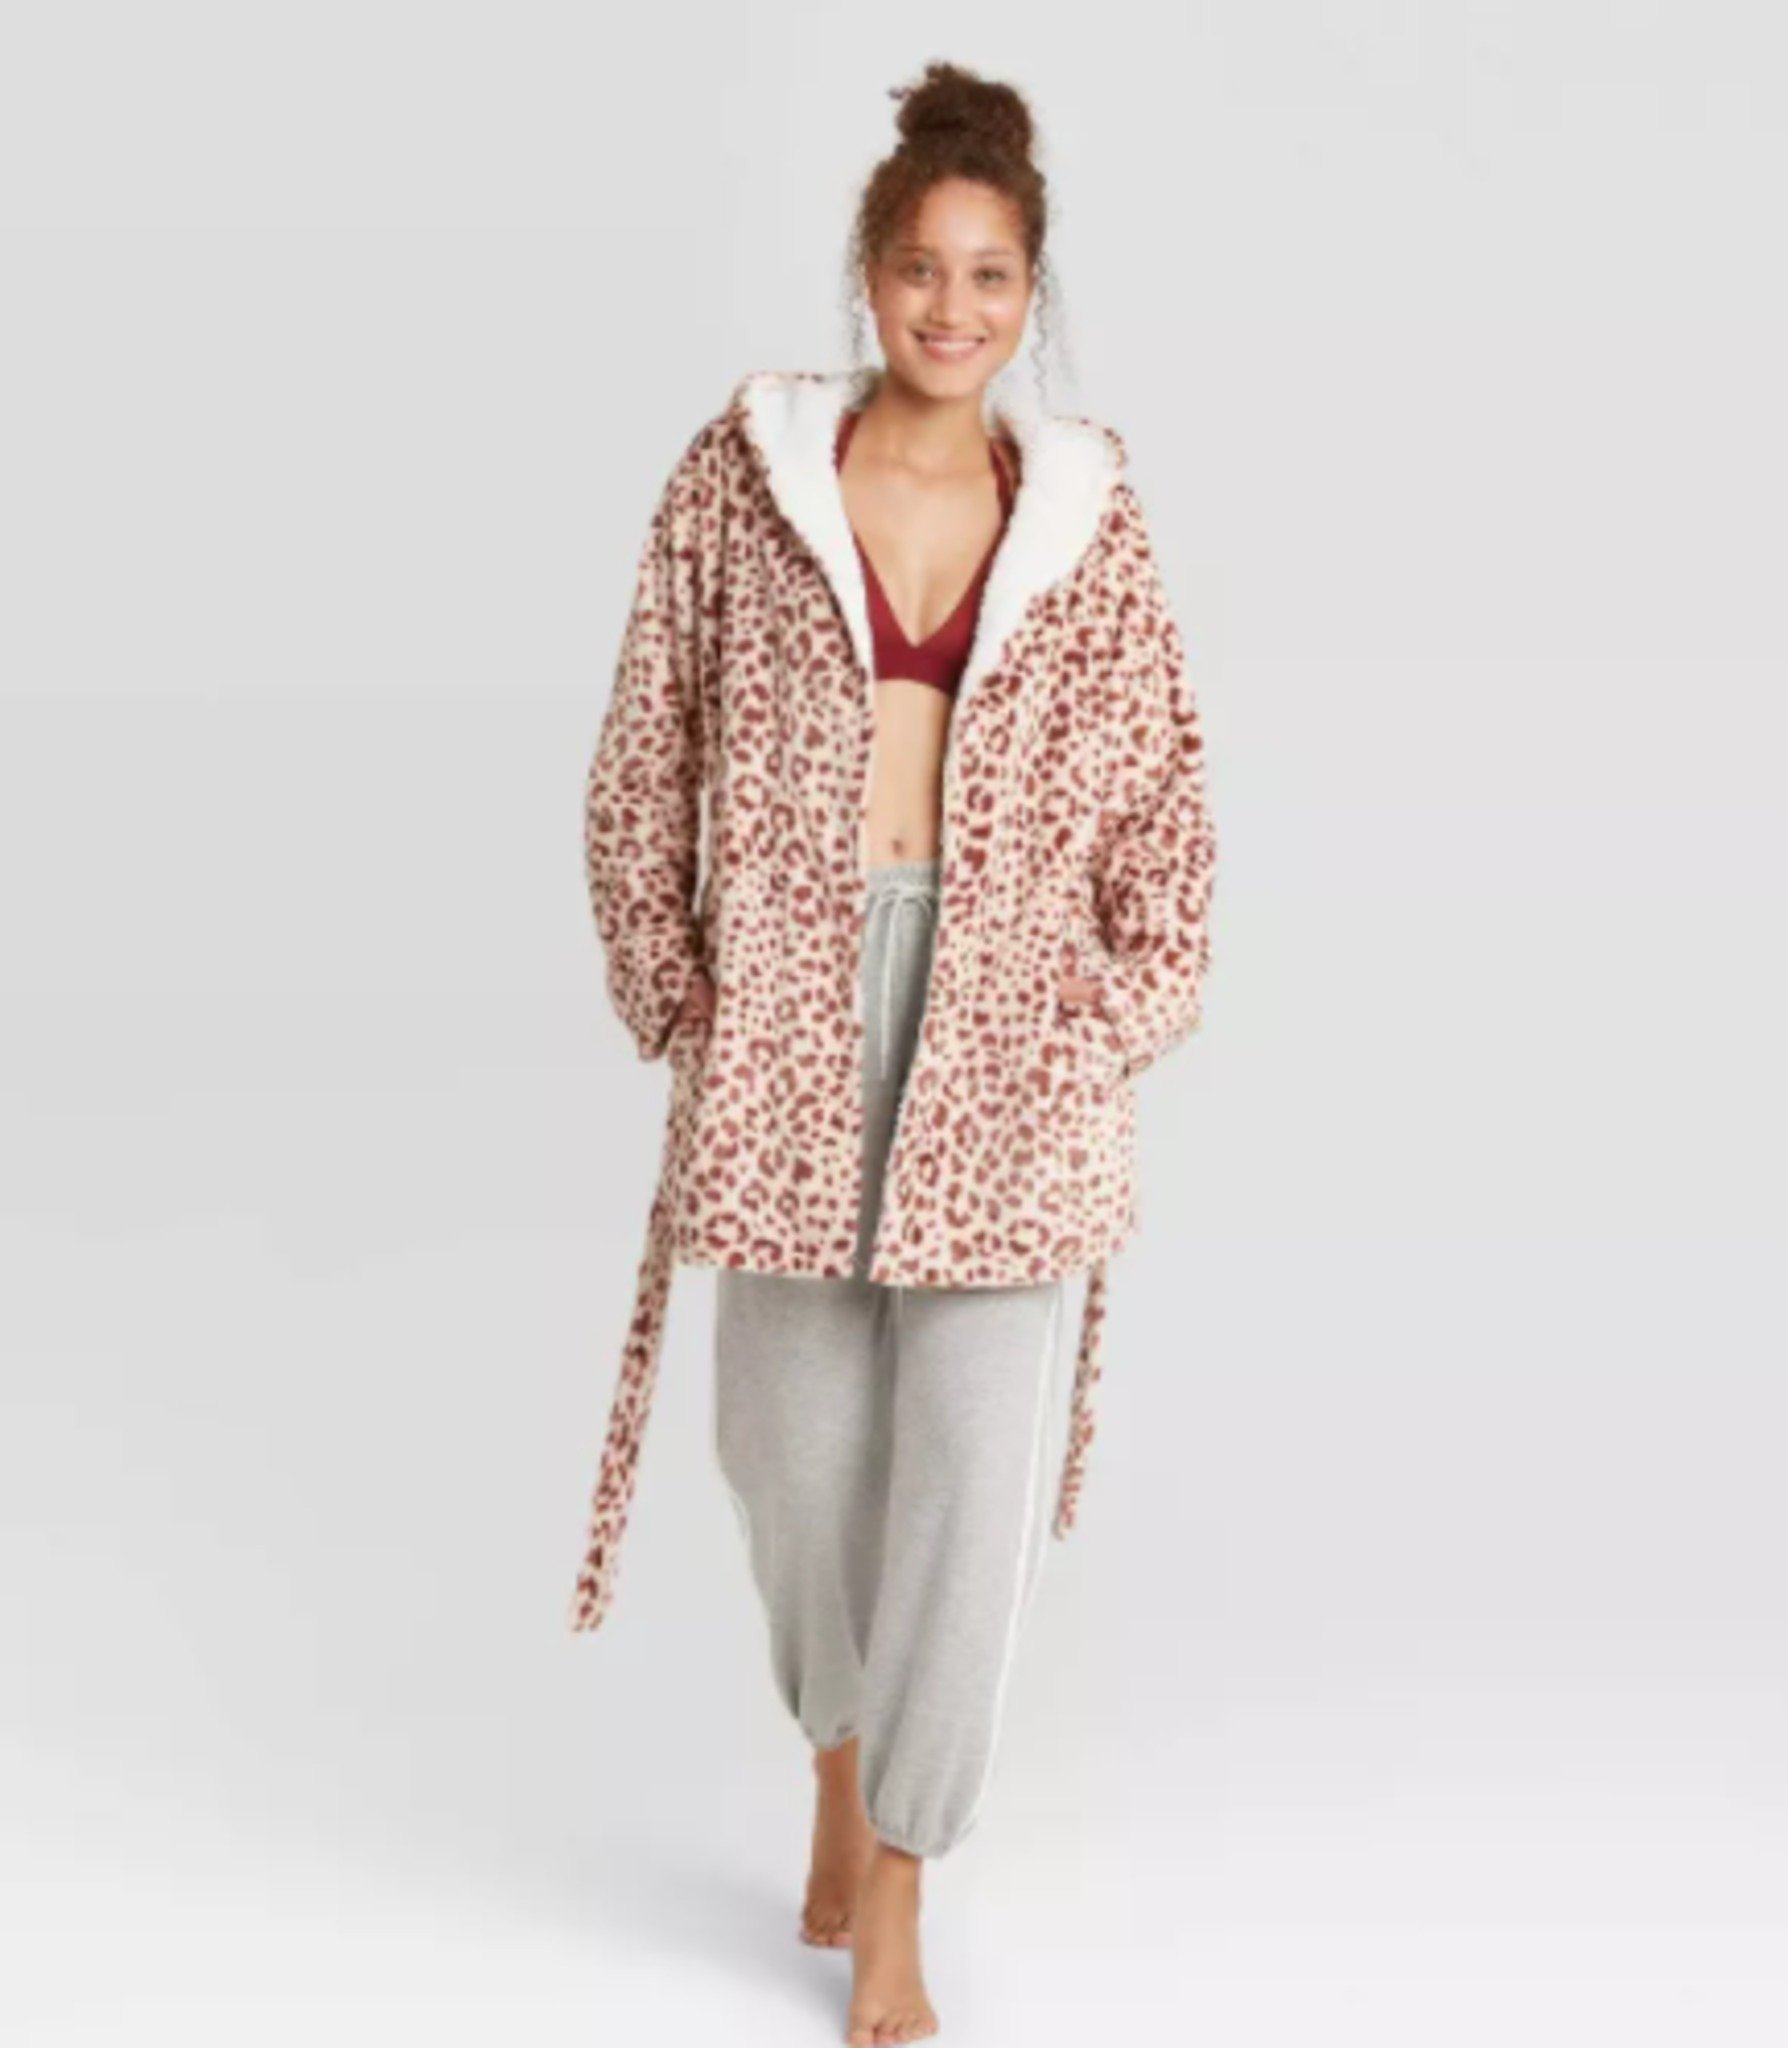 1608888565 710 Cardi B Wore A 30 Robe From Target In Her